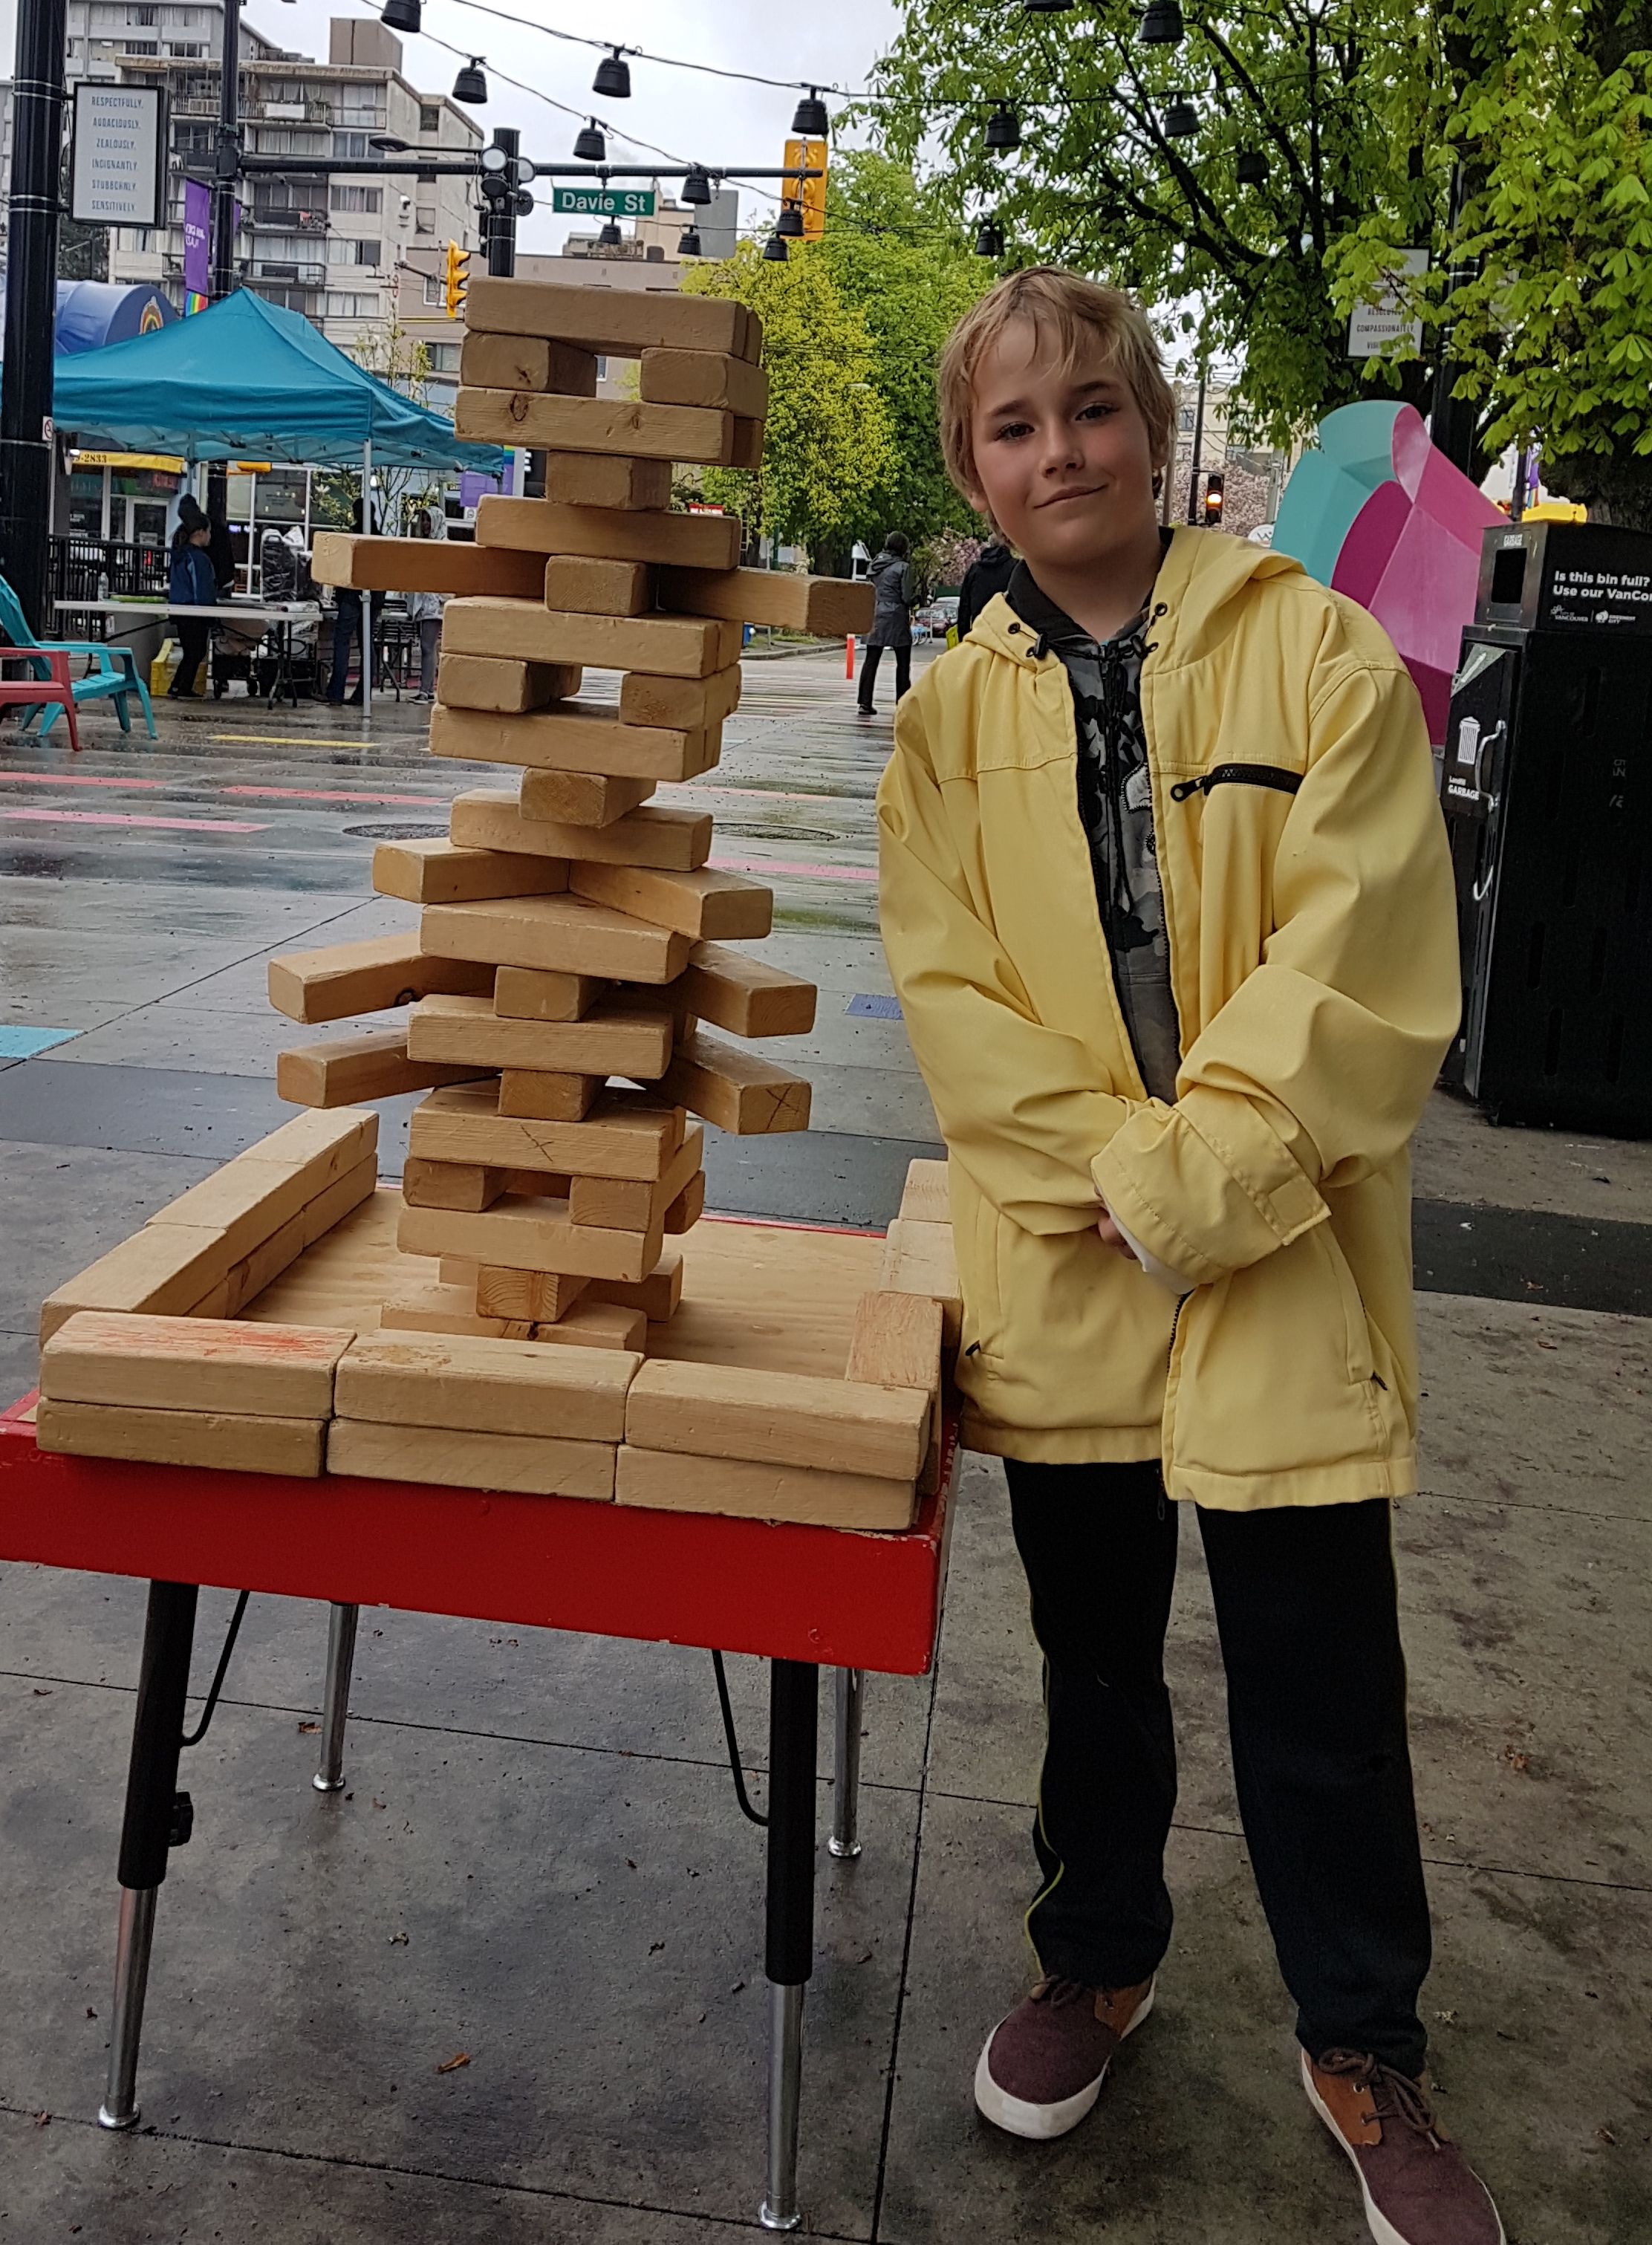 The games people play, even in the rain! (Christopher Clarke Hyndman Photo)